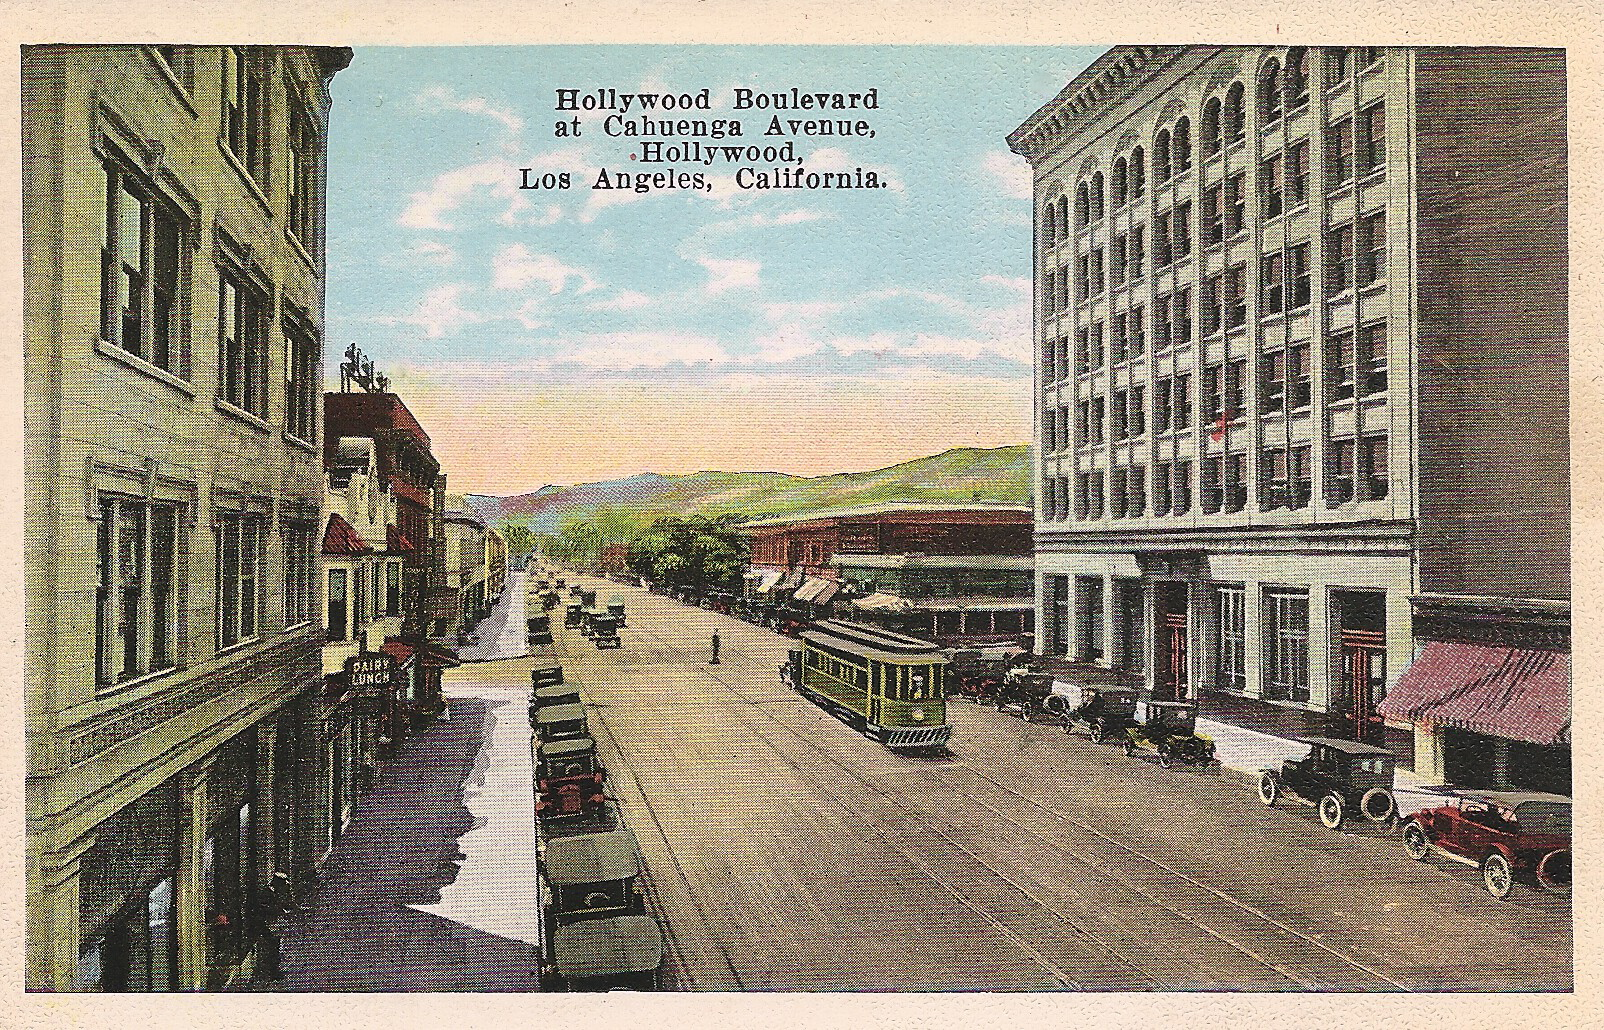 Hollywood Boulevard at Cahuenga Avenue looking west